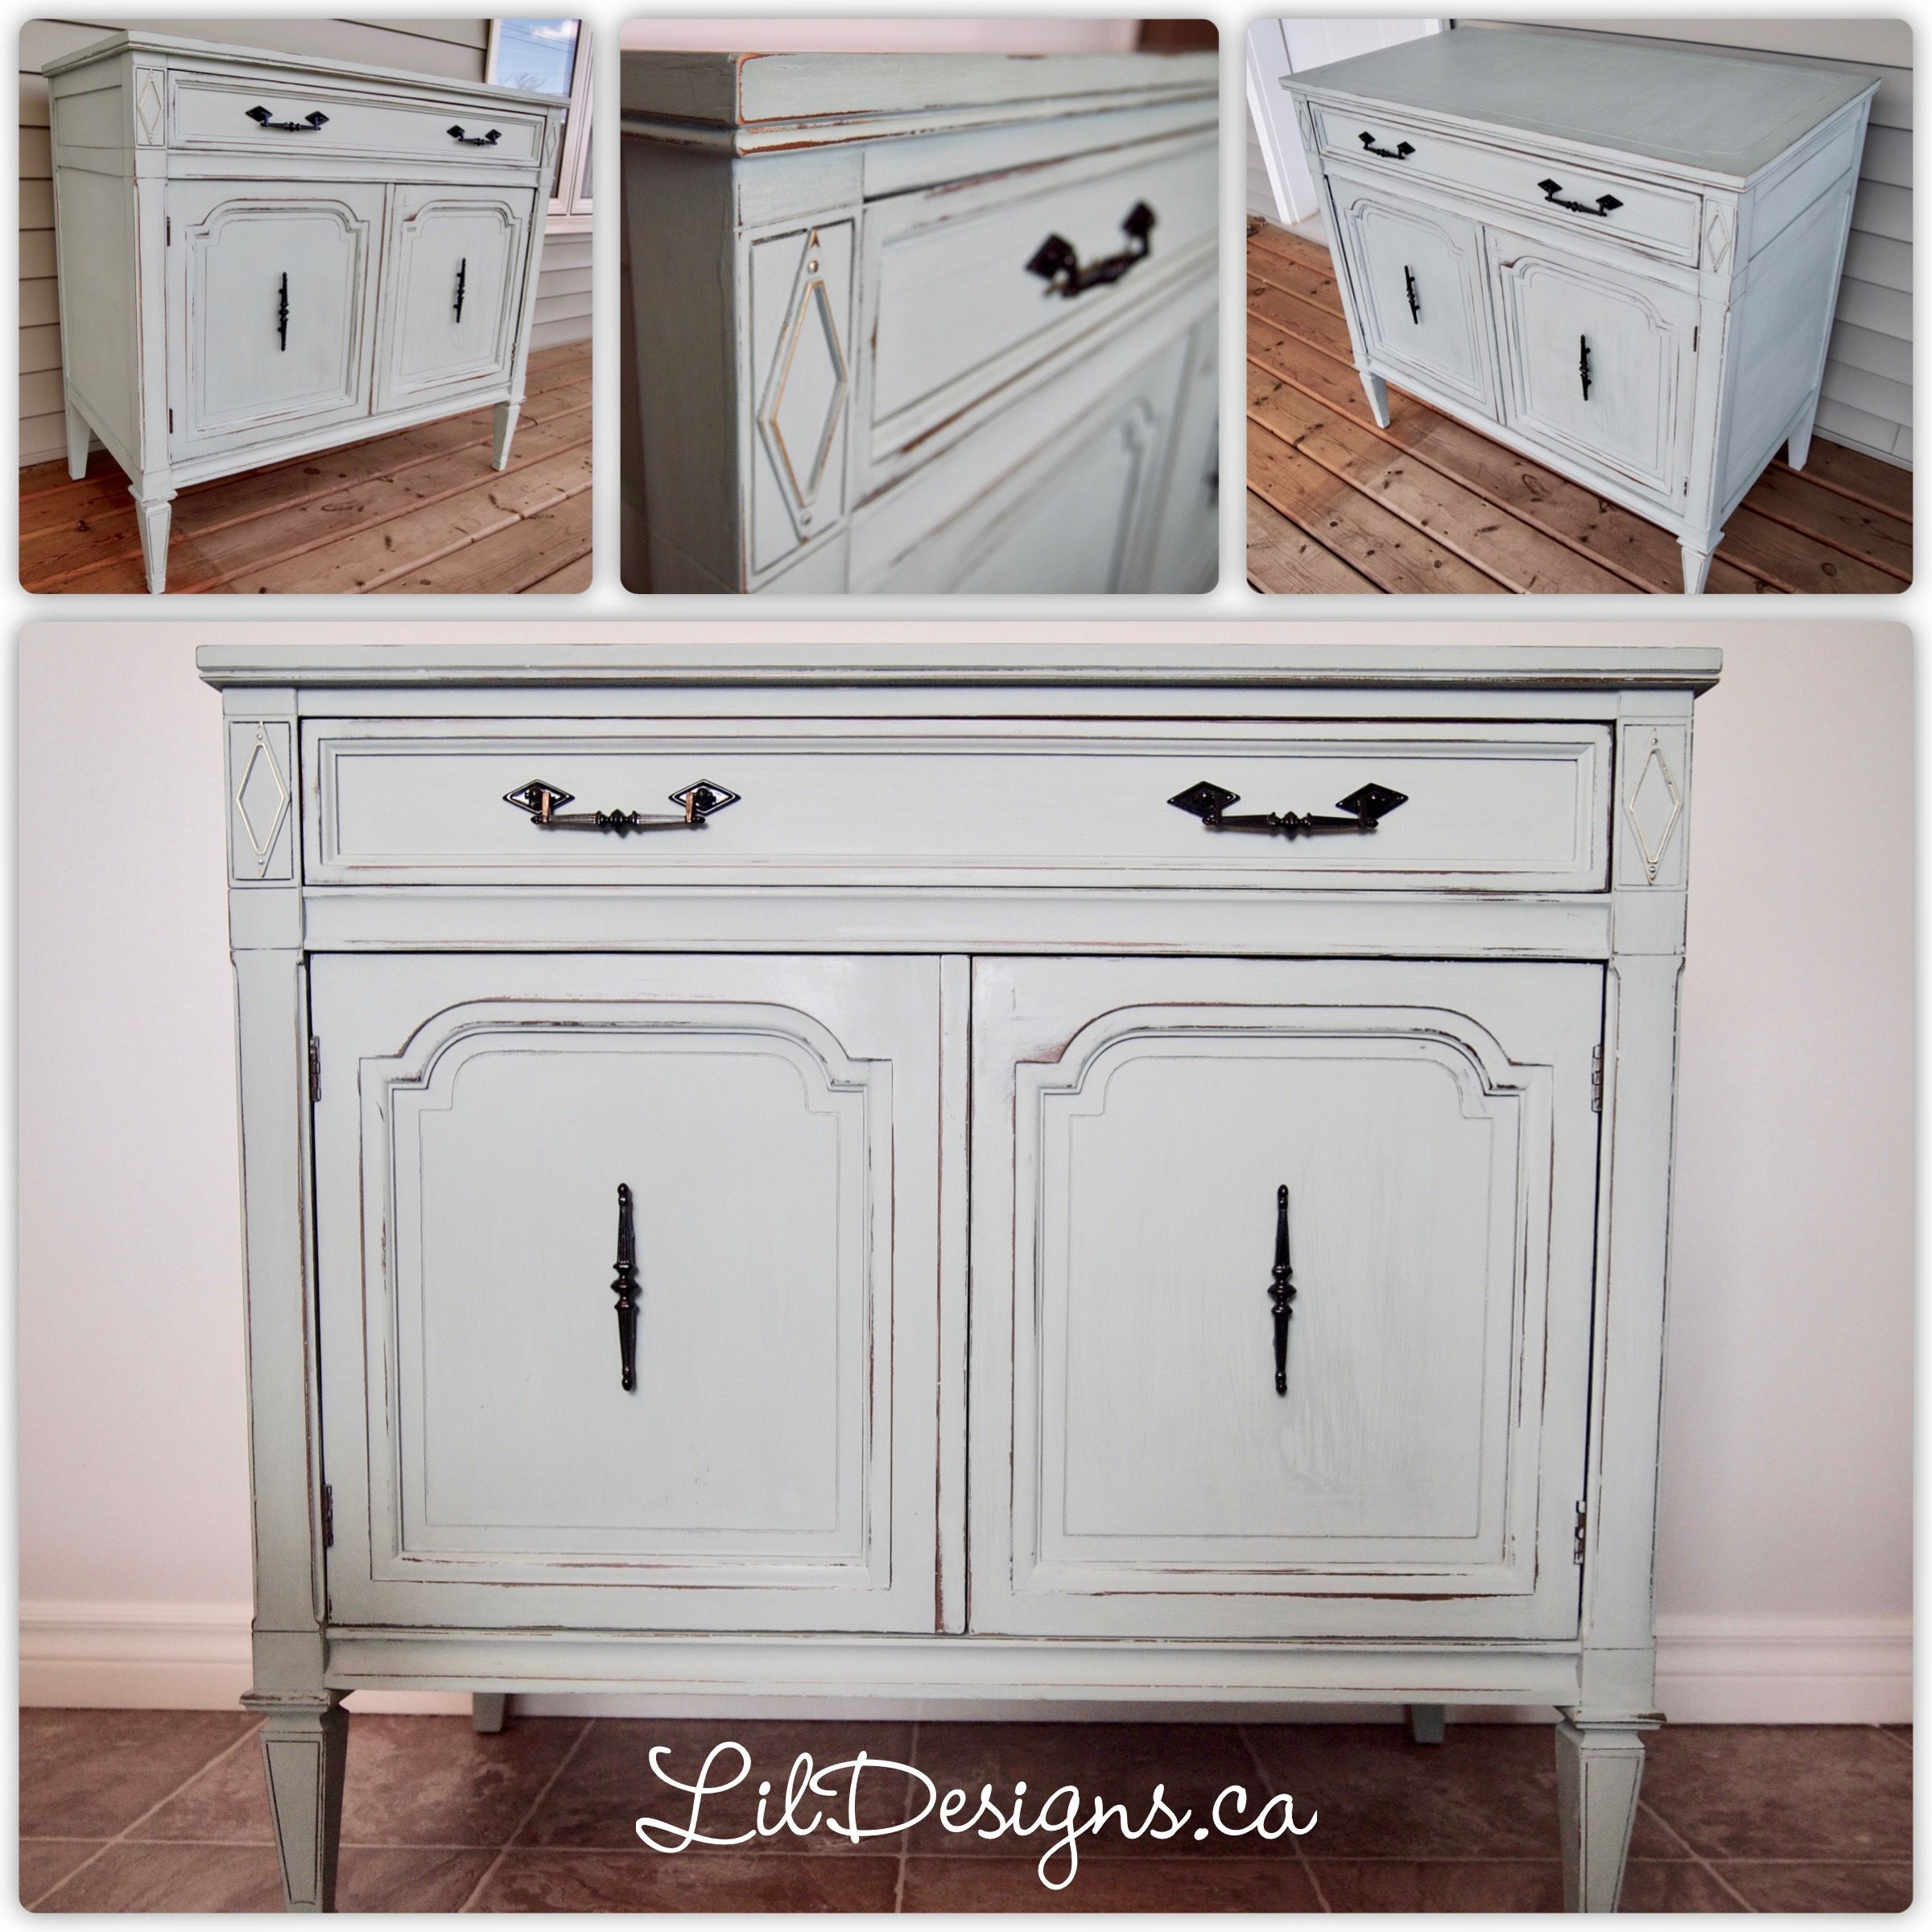 Lovely 1 Drawer 2 Door Accent Cabinet. The Distressed Details And Duck Egg  Colour Finish